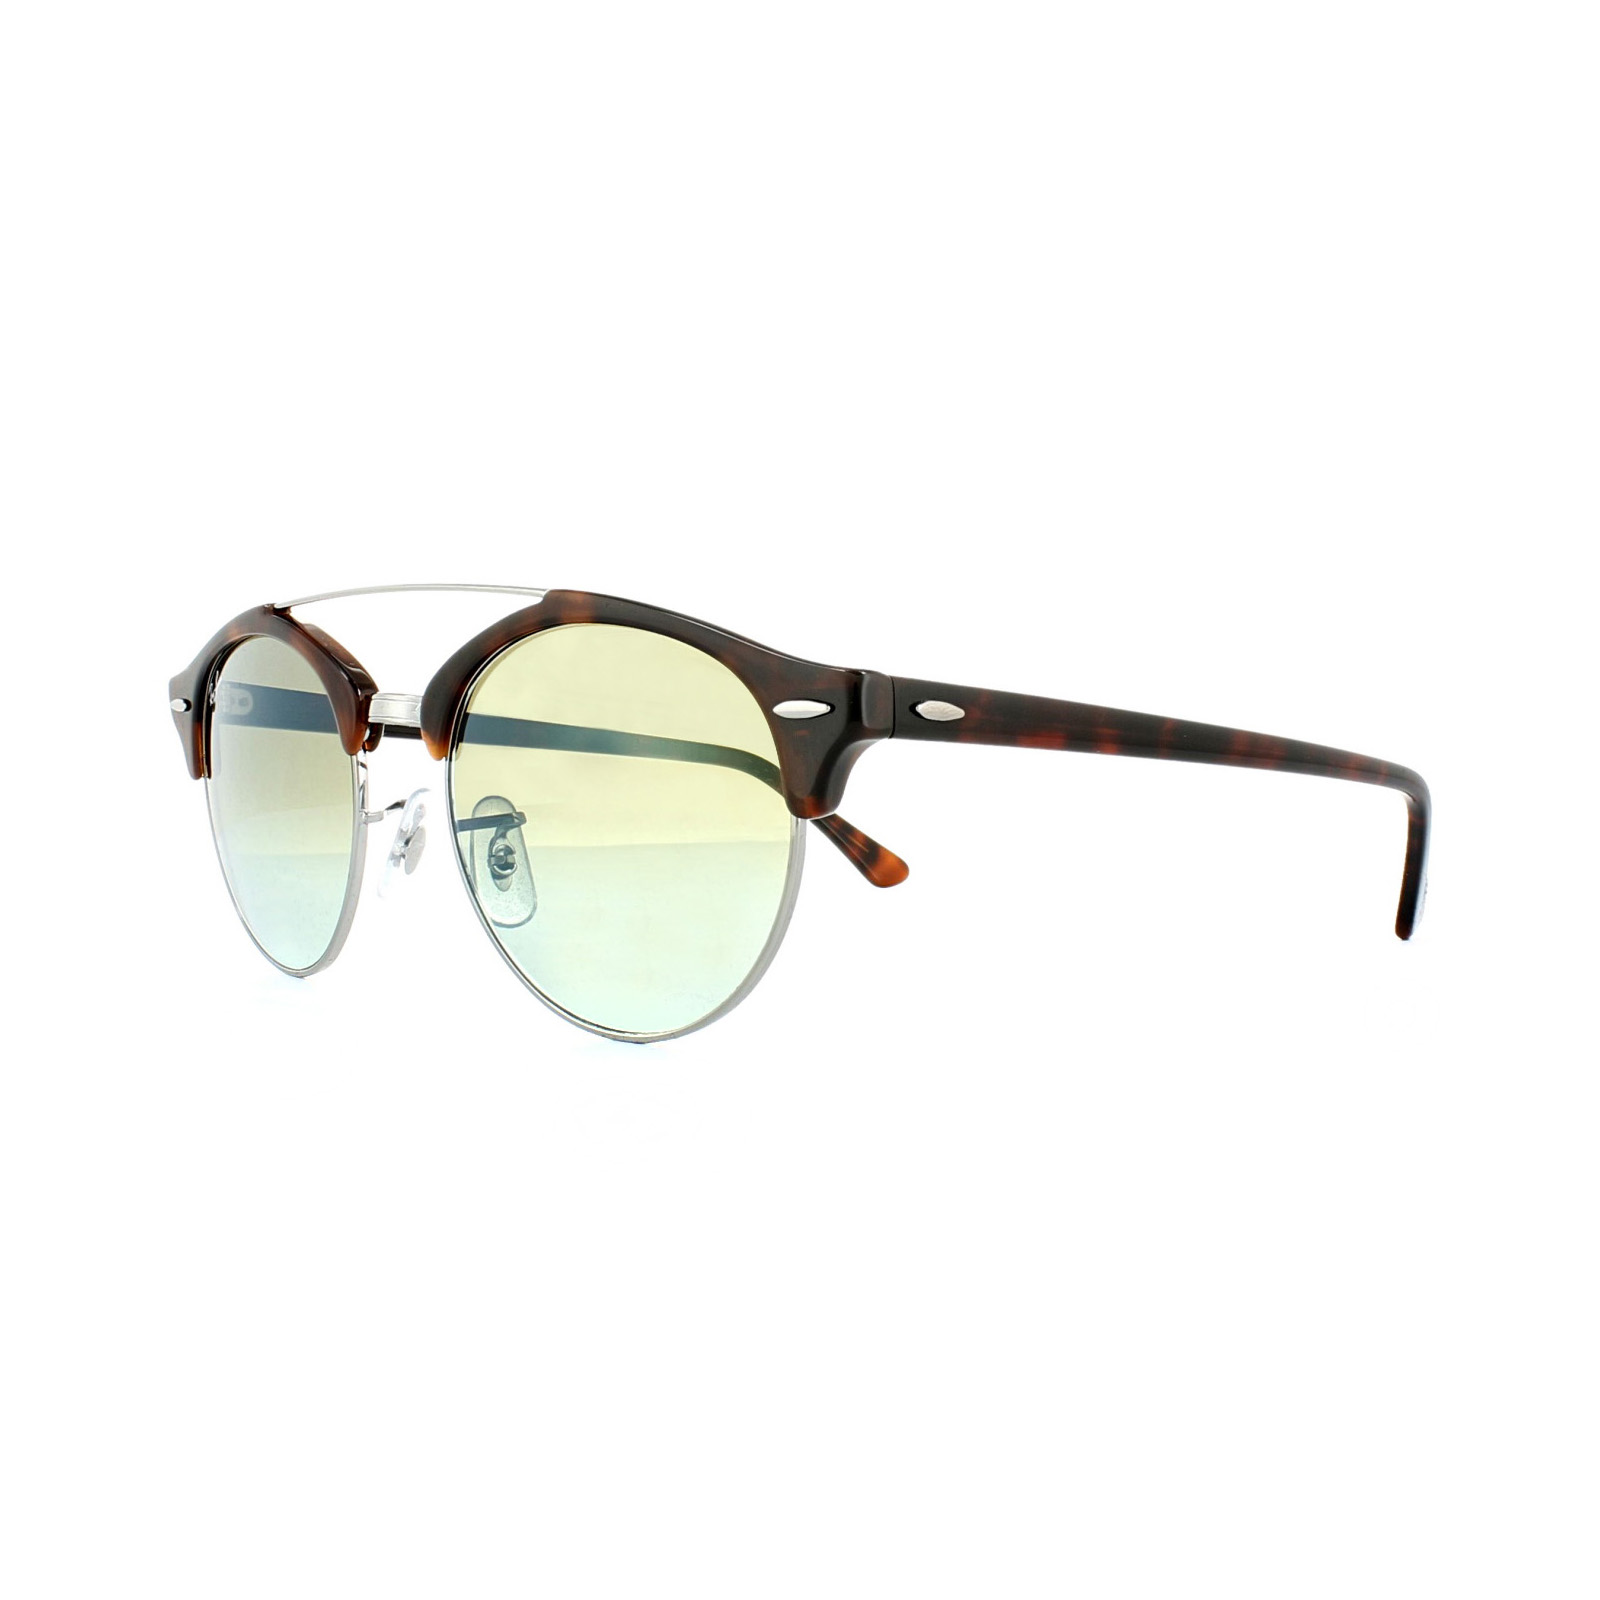 c03647ea963c63 Details about Ray-Ban Sunglasses Clubround Double Bridge 4346 62519J Havana  Green Gradient